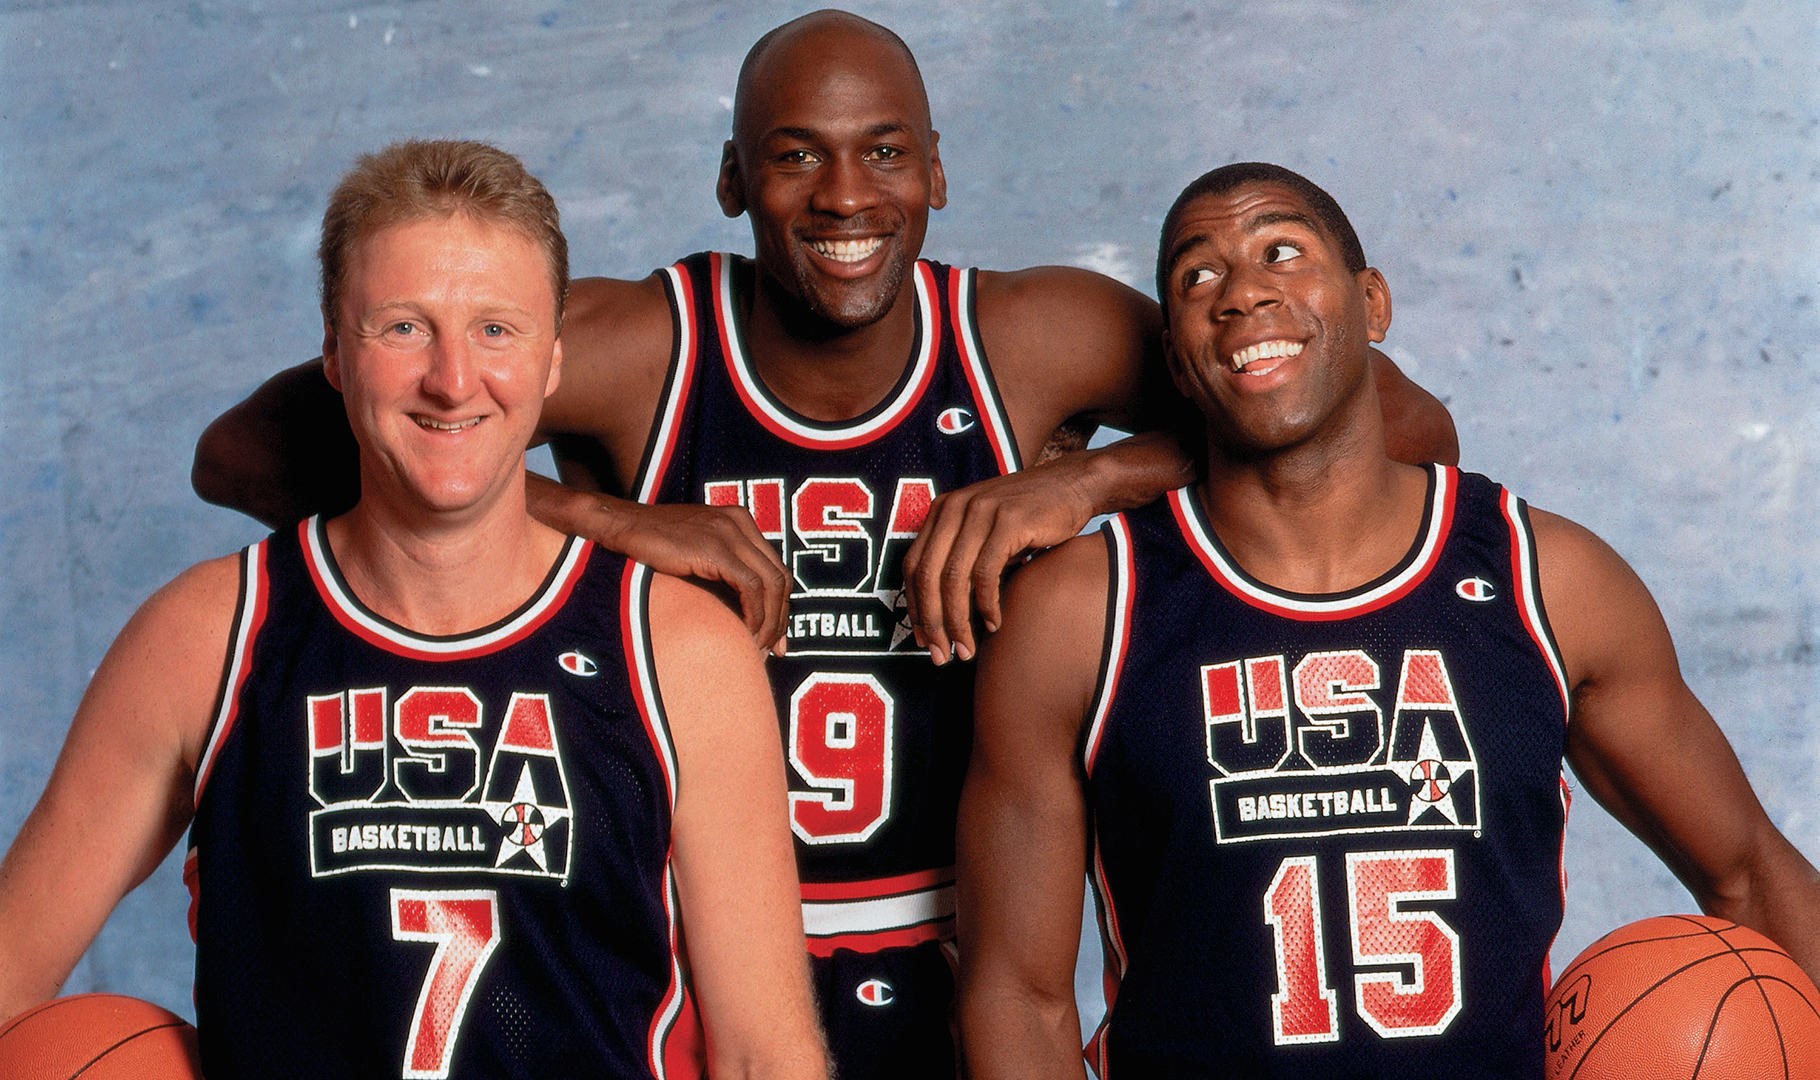 Larry Bird, Michael Jordan, Magic Johnson